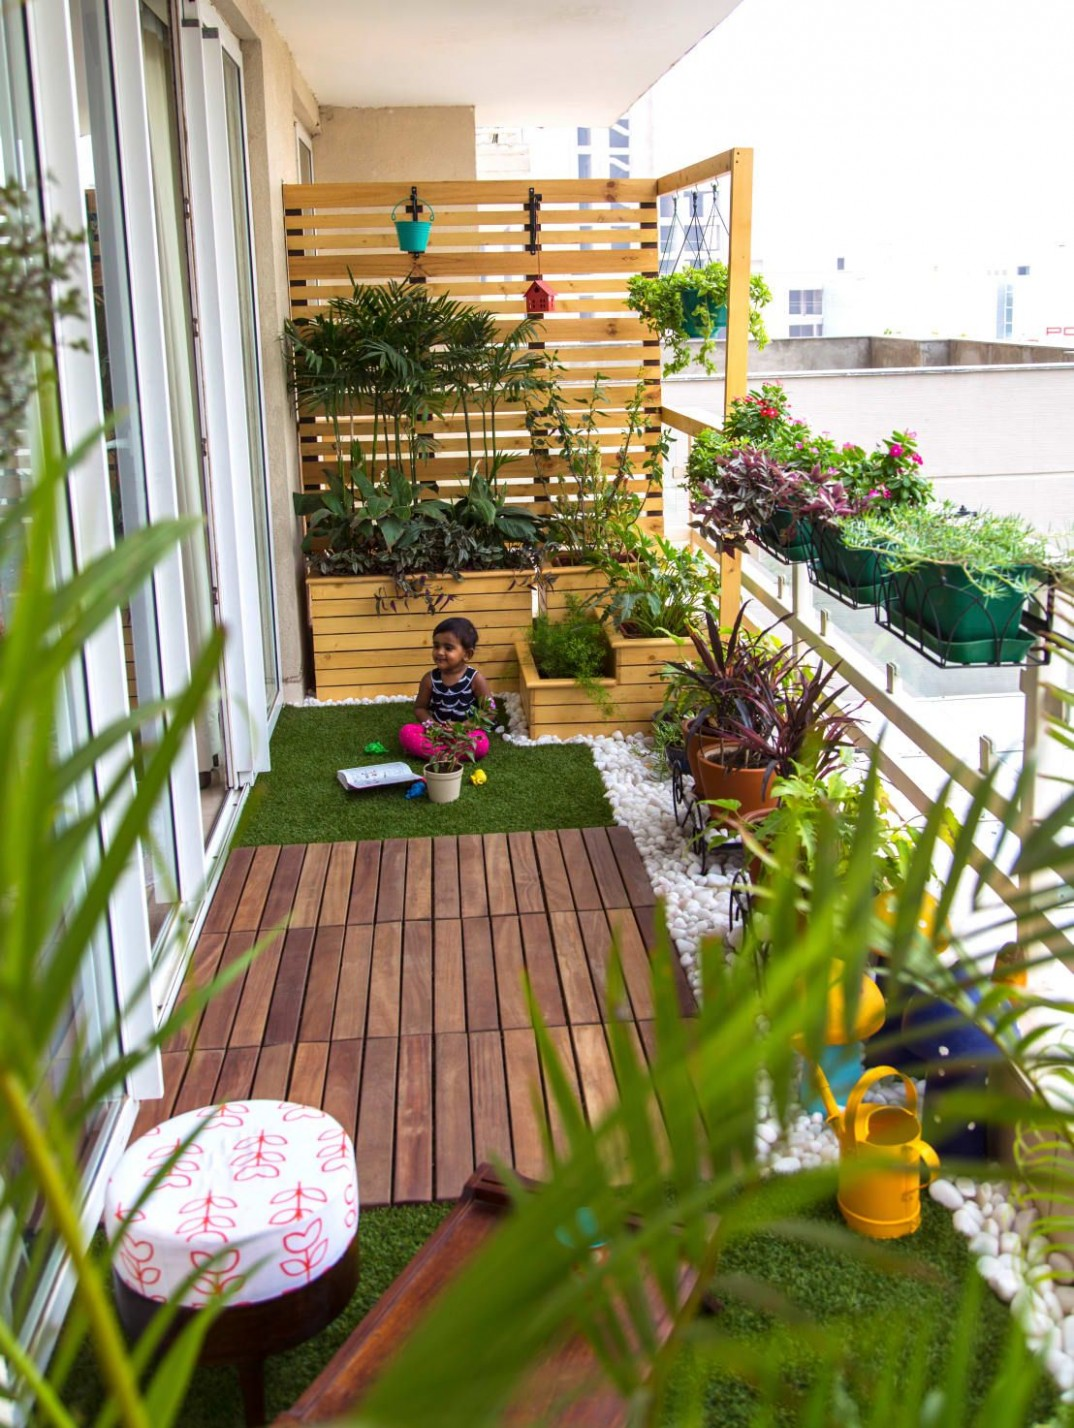 10 Smart Balcony Garden Ideas That are Awesome  Apartment balcony  - Apartment Yard Design